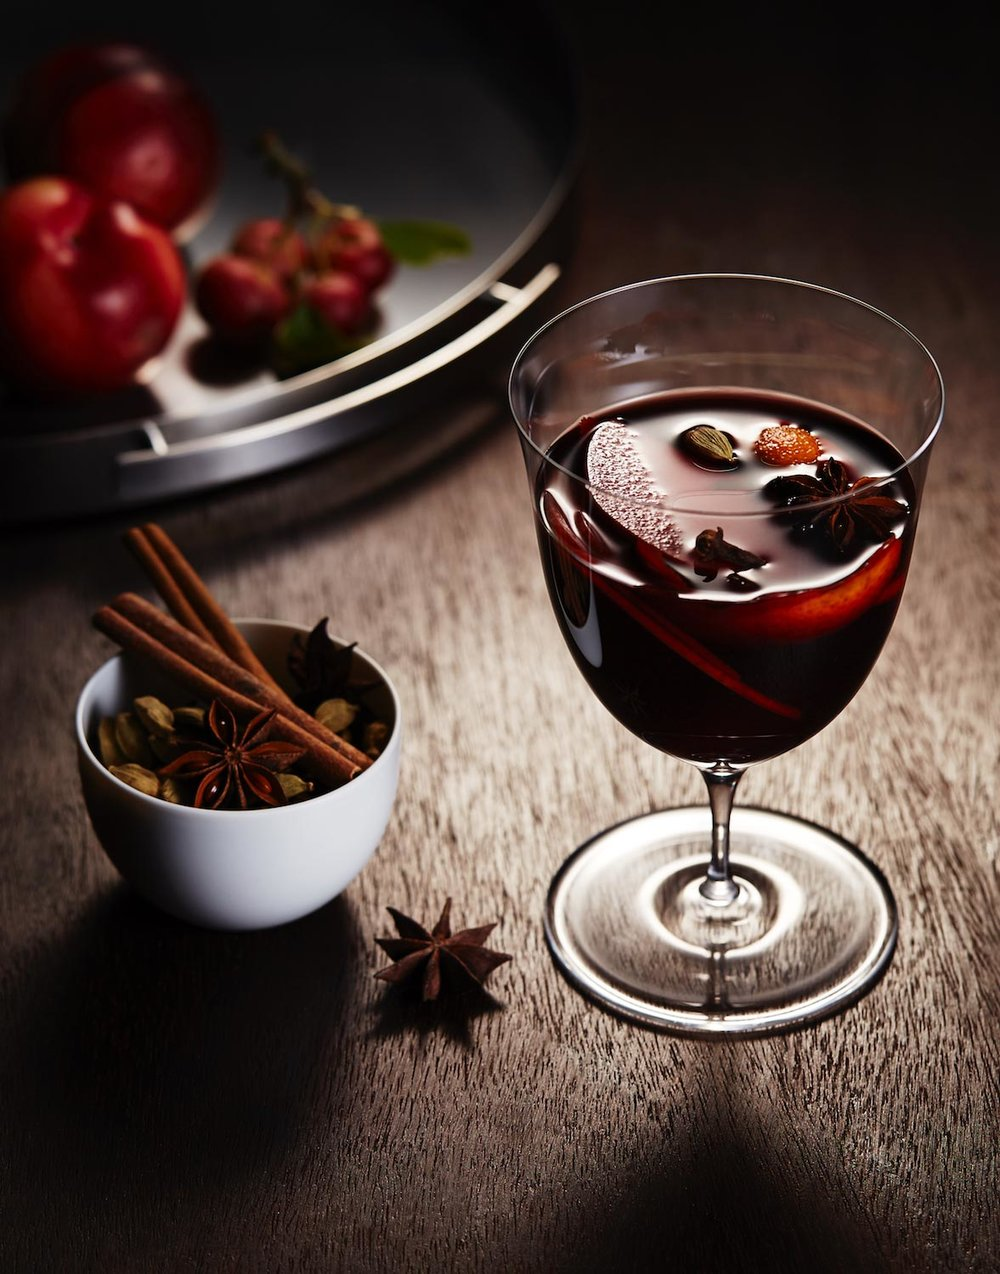 107_Still_Life_Product_Photographer_Dennis_Pedersen_Drink_Cocktail_Spicey_Christmas_Cinamon_Mulled Wine_Harrods_Liquid_Advertising_Editorial_Creative_.jpg